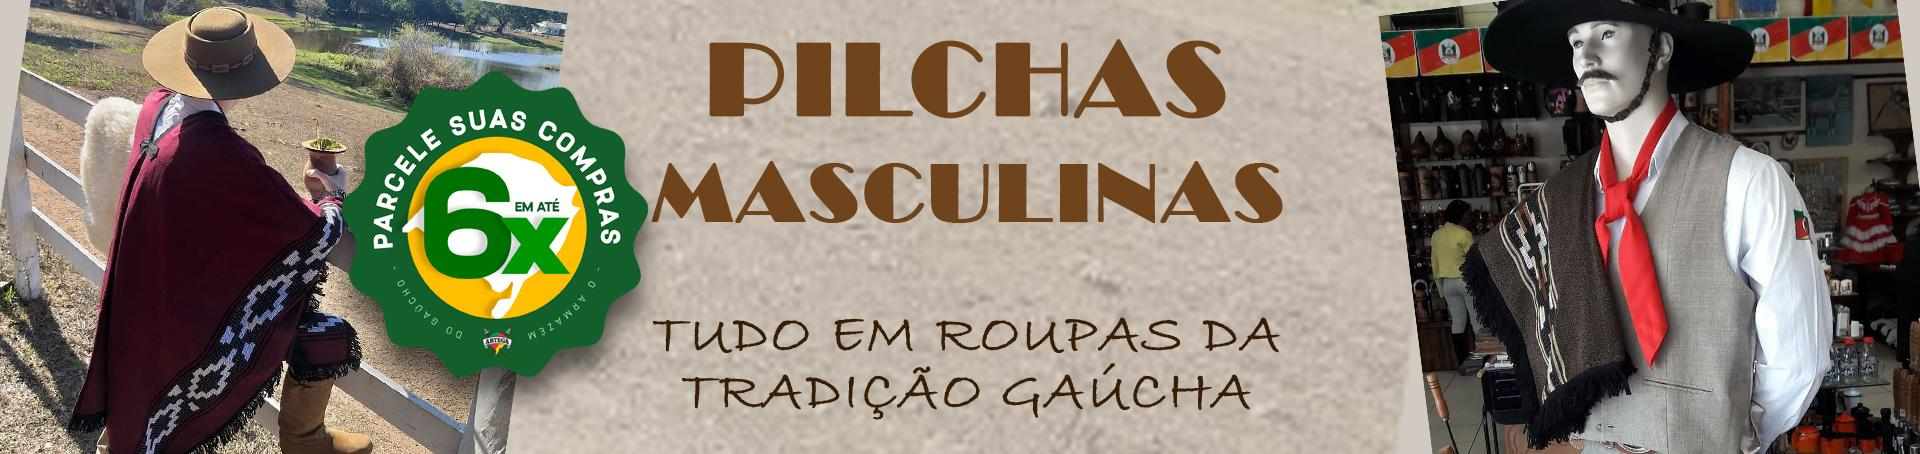 PILCHAS MASCULINAS